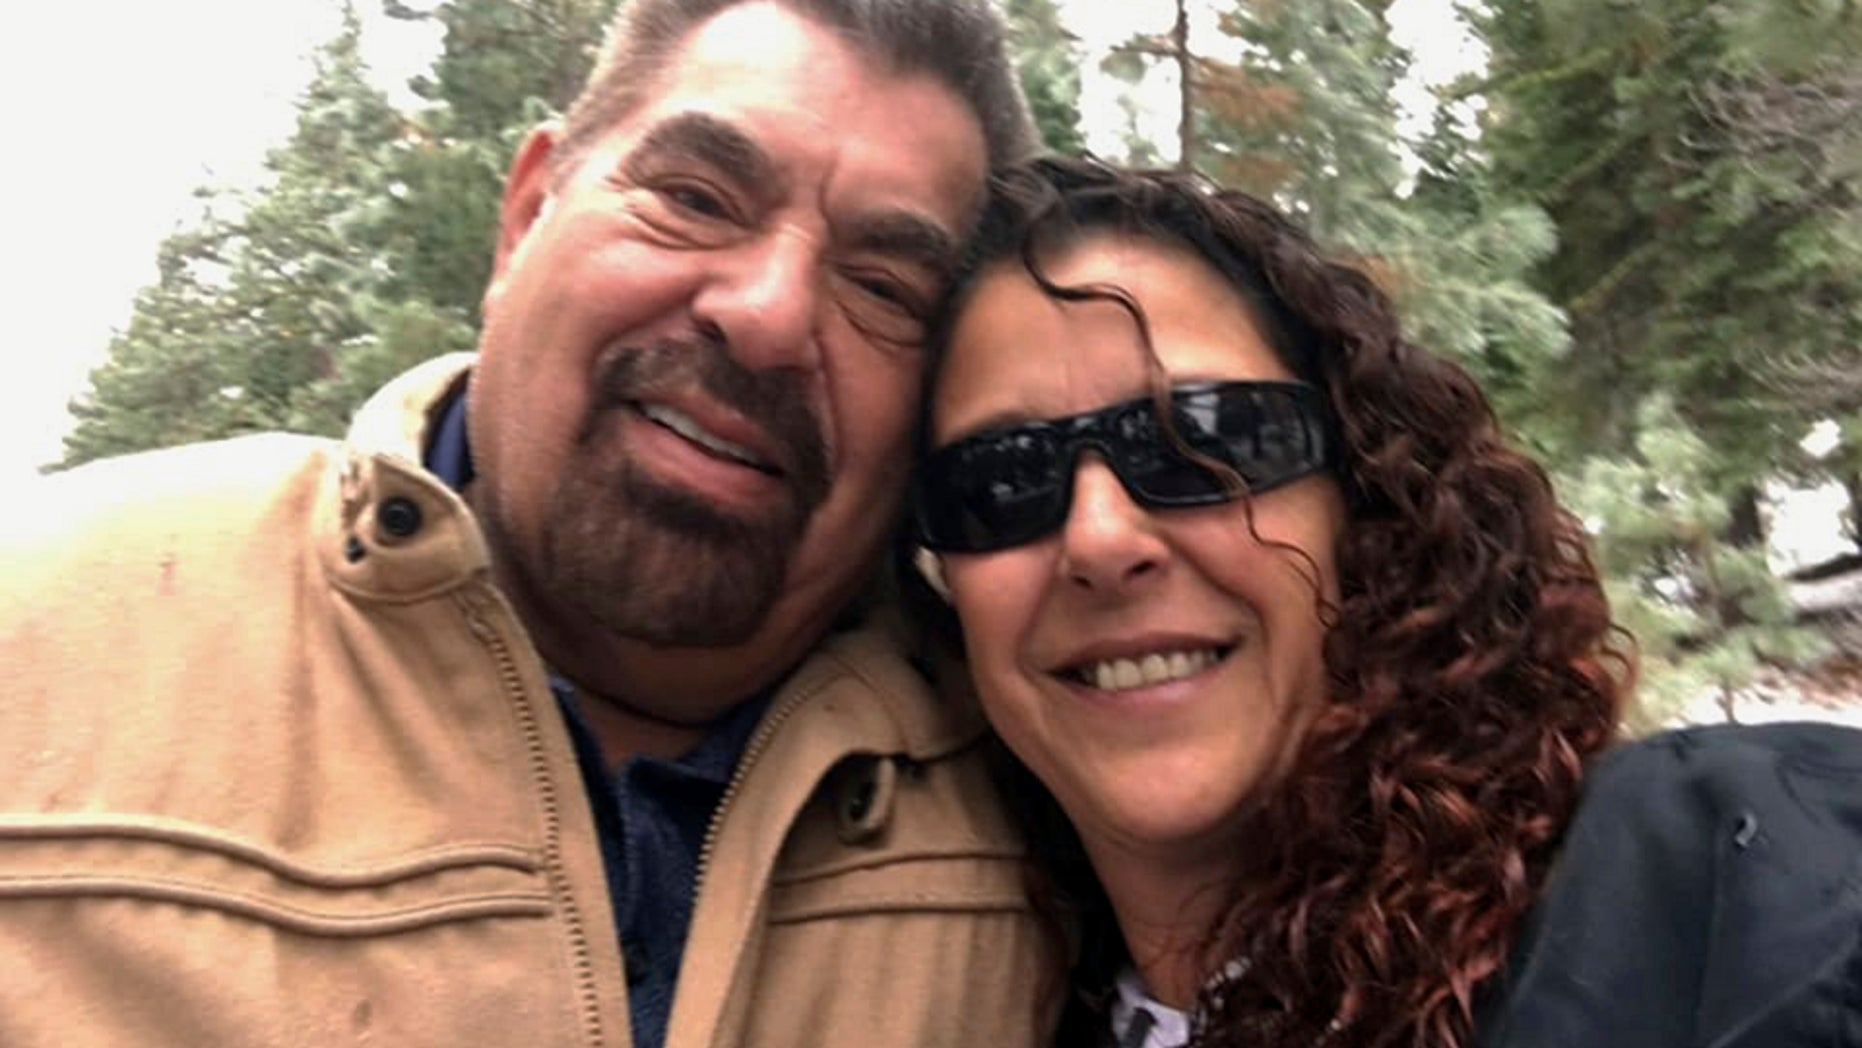 FILE: Antonio Pastini, left, who had also gone by Jordan Isaacson and was known for years as Ike, was killed while piloting a small plane that crashed into a house in Yorba Linda, Calif. (Julia Ackley via AP)